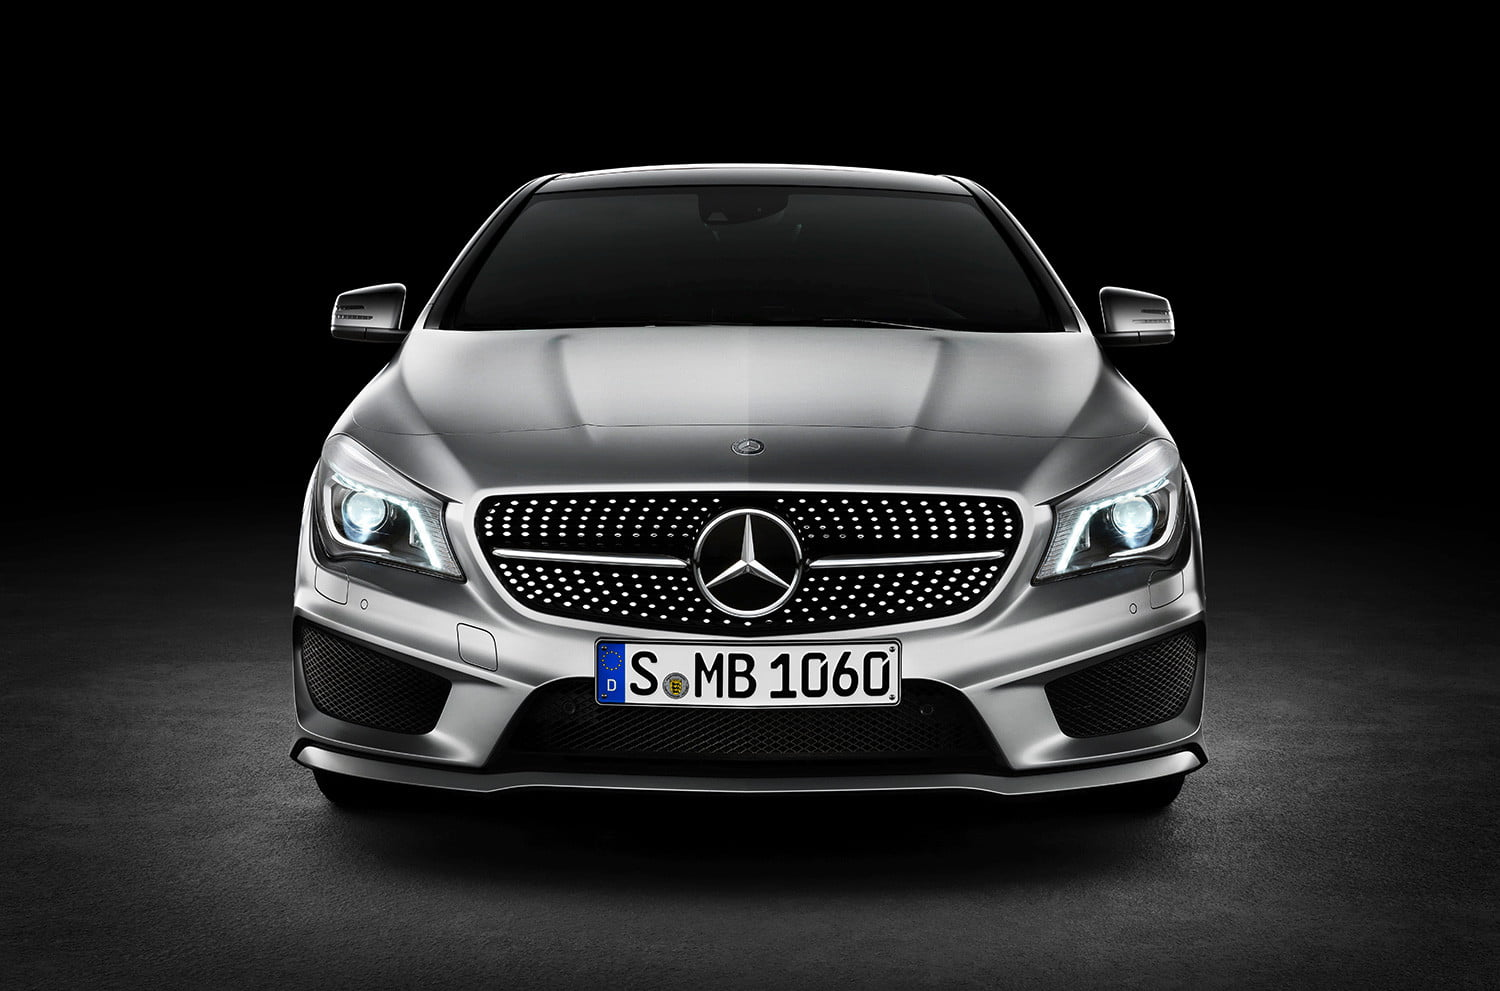 2015 audi a3 vs 2014 mercedes benz cla250 digital trends for New cla mercedes benz